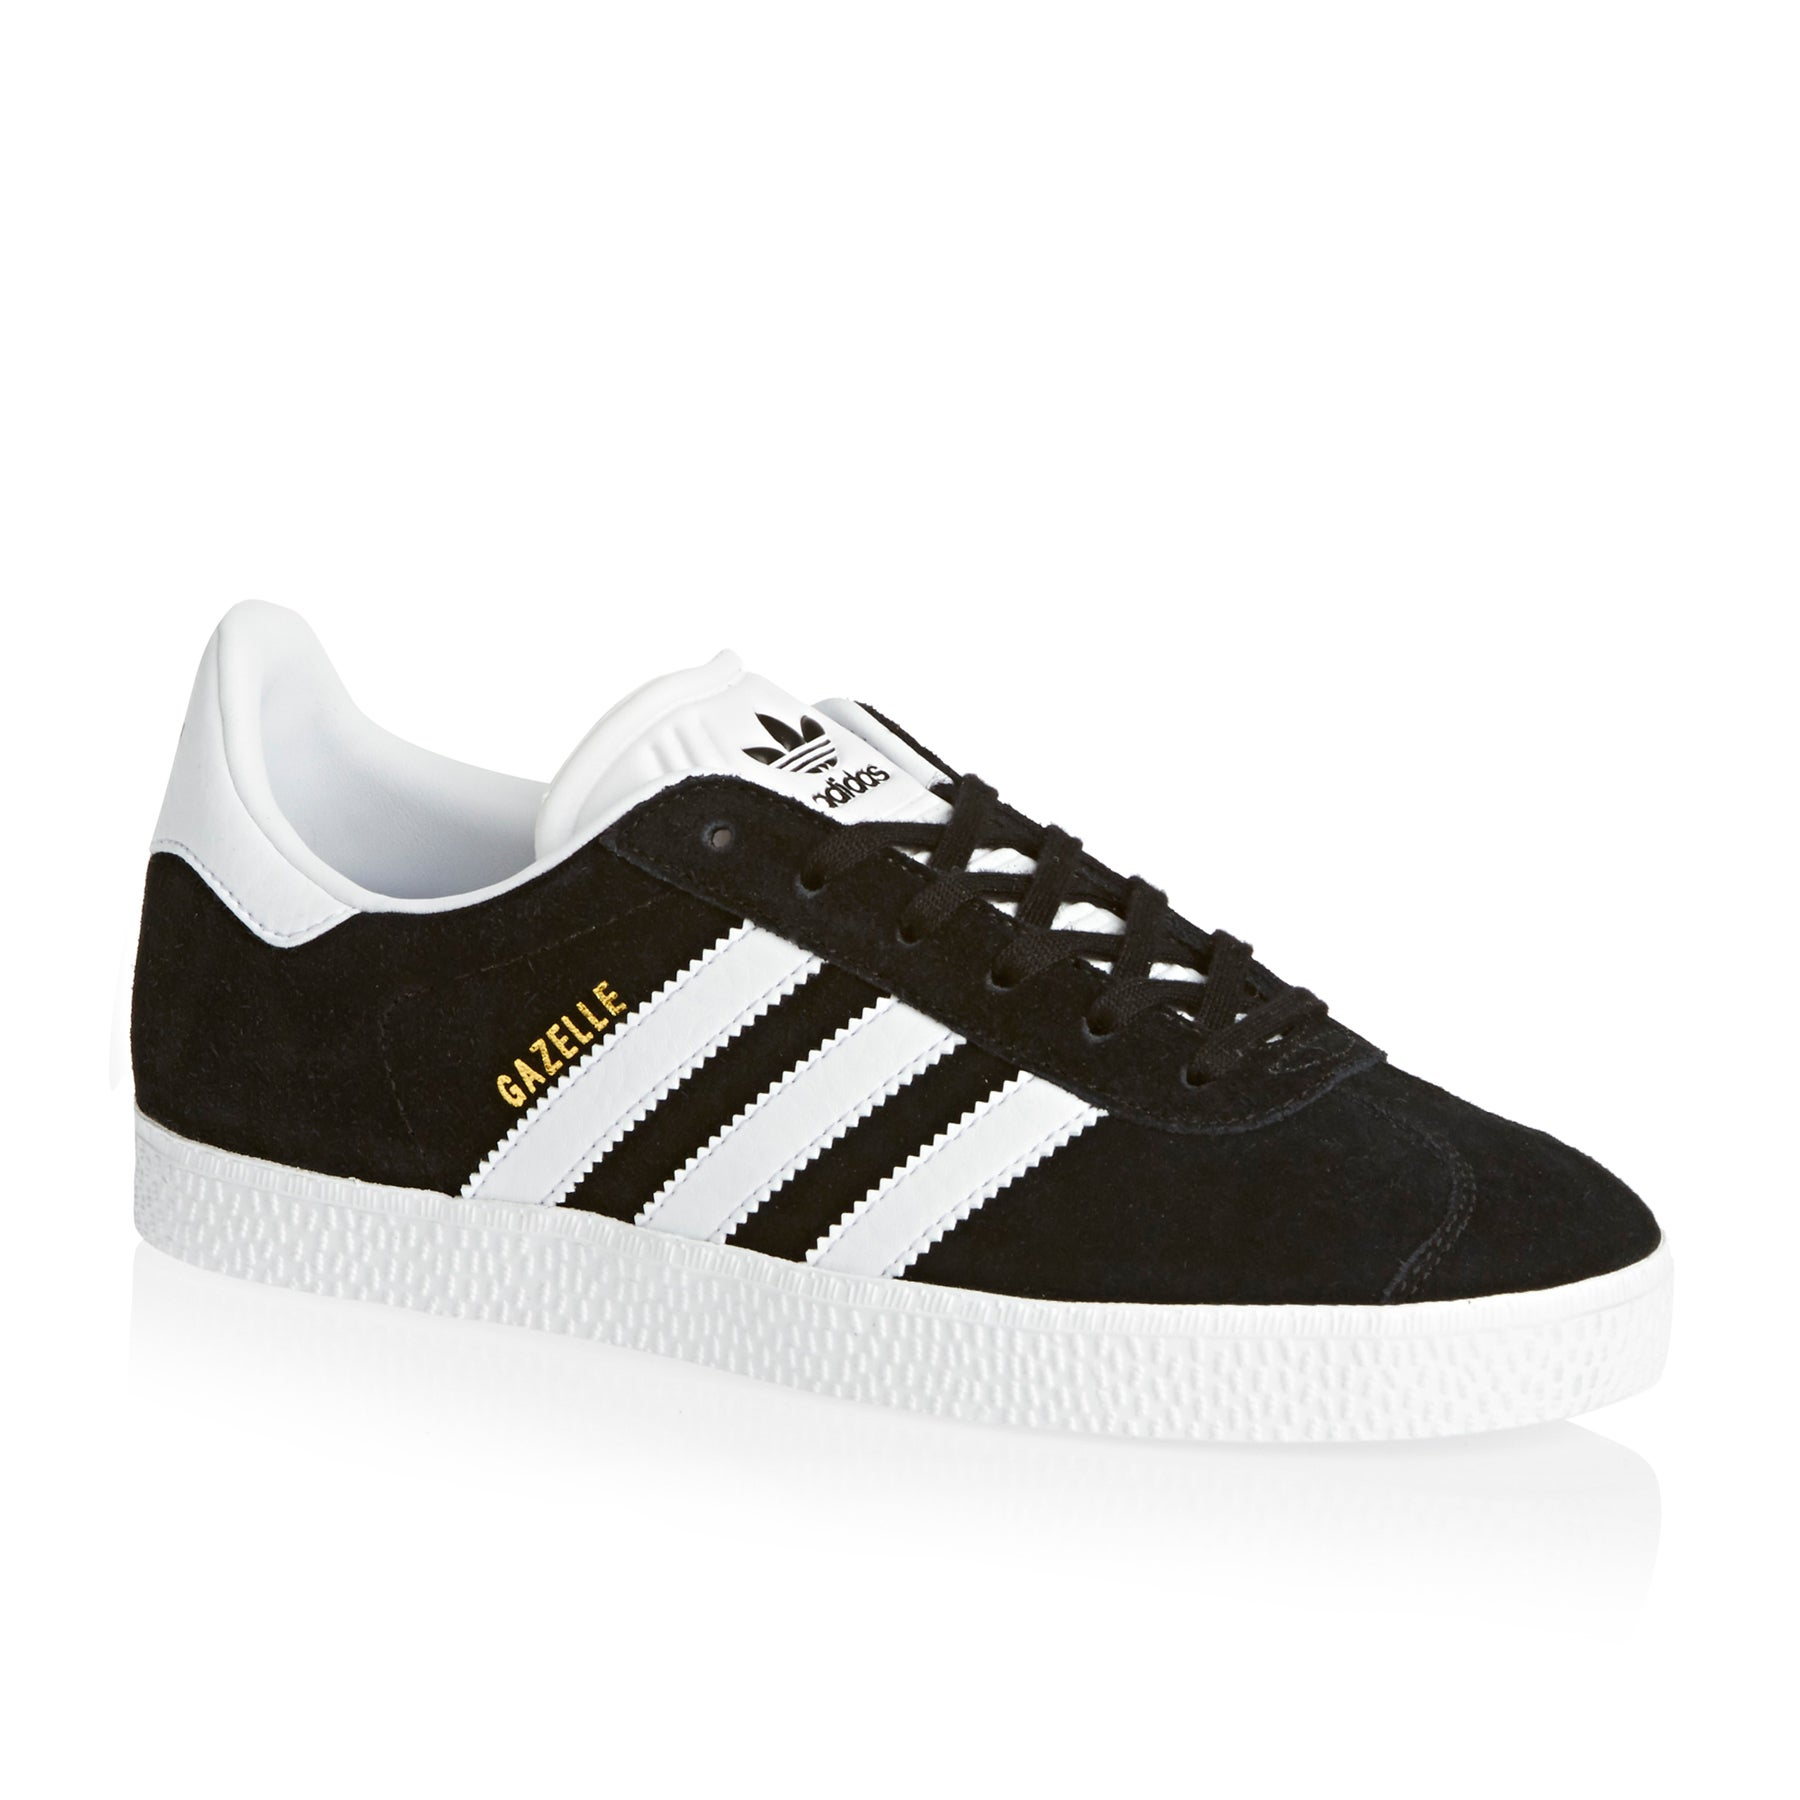 Adidas Originals Gazelle Boys Shoes - Black White Gold Metallic